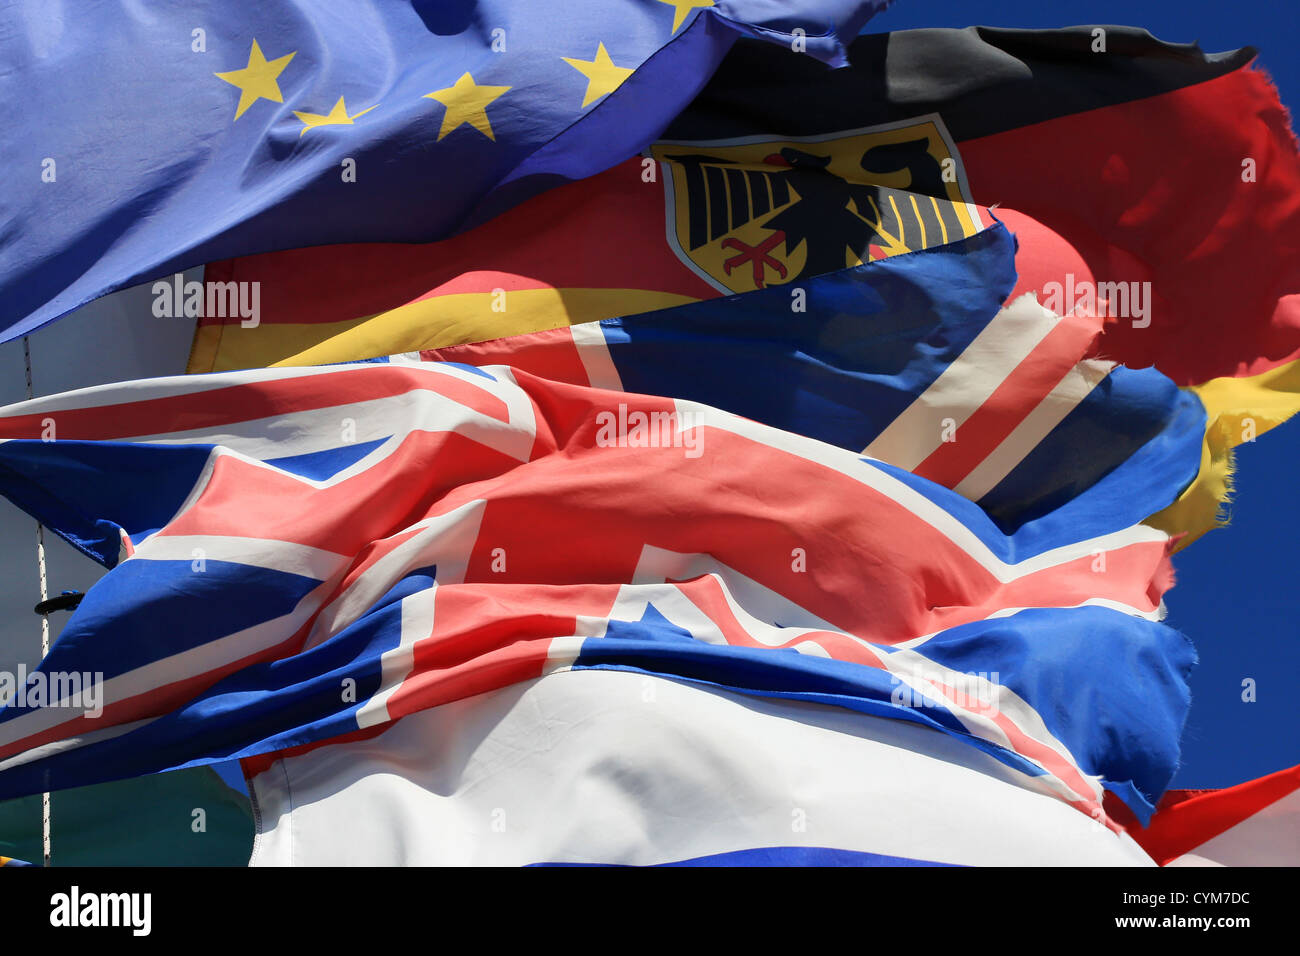 The National Flags Of France UK And Germany Along With European Union Flag All Flying Together Thight Shot